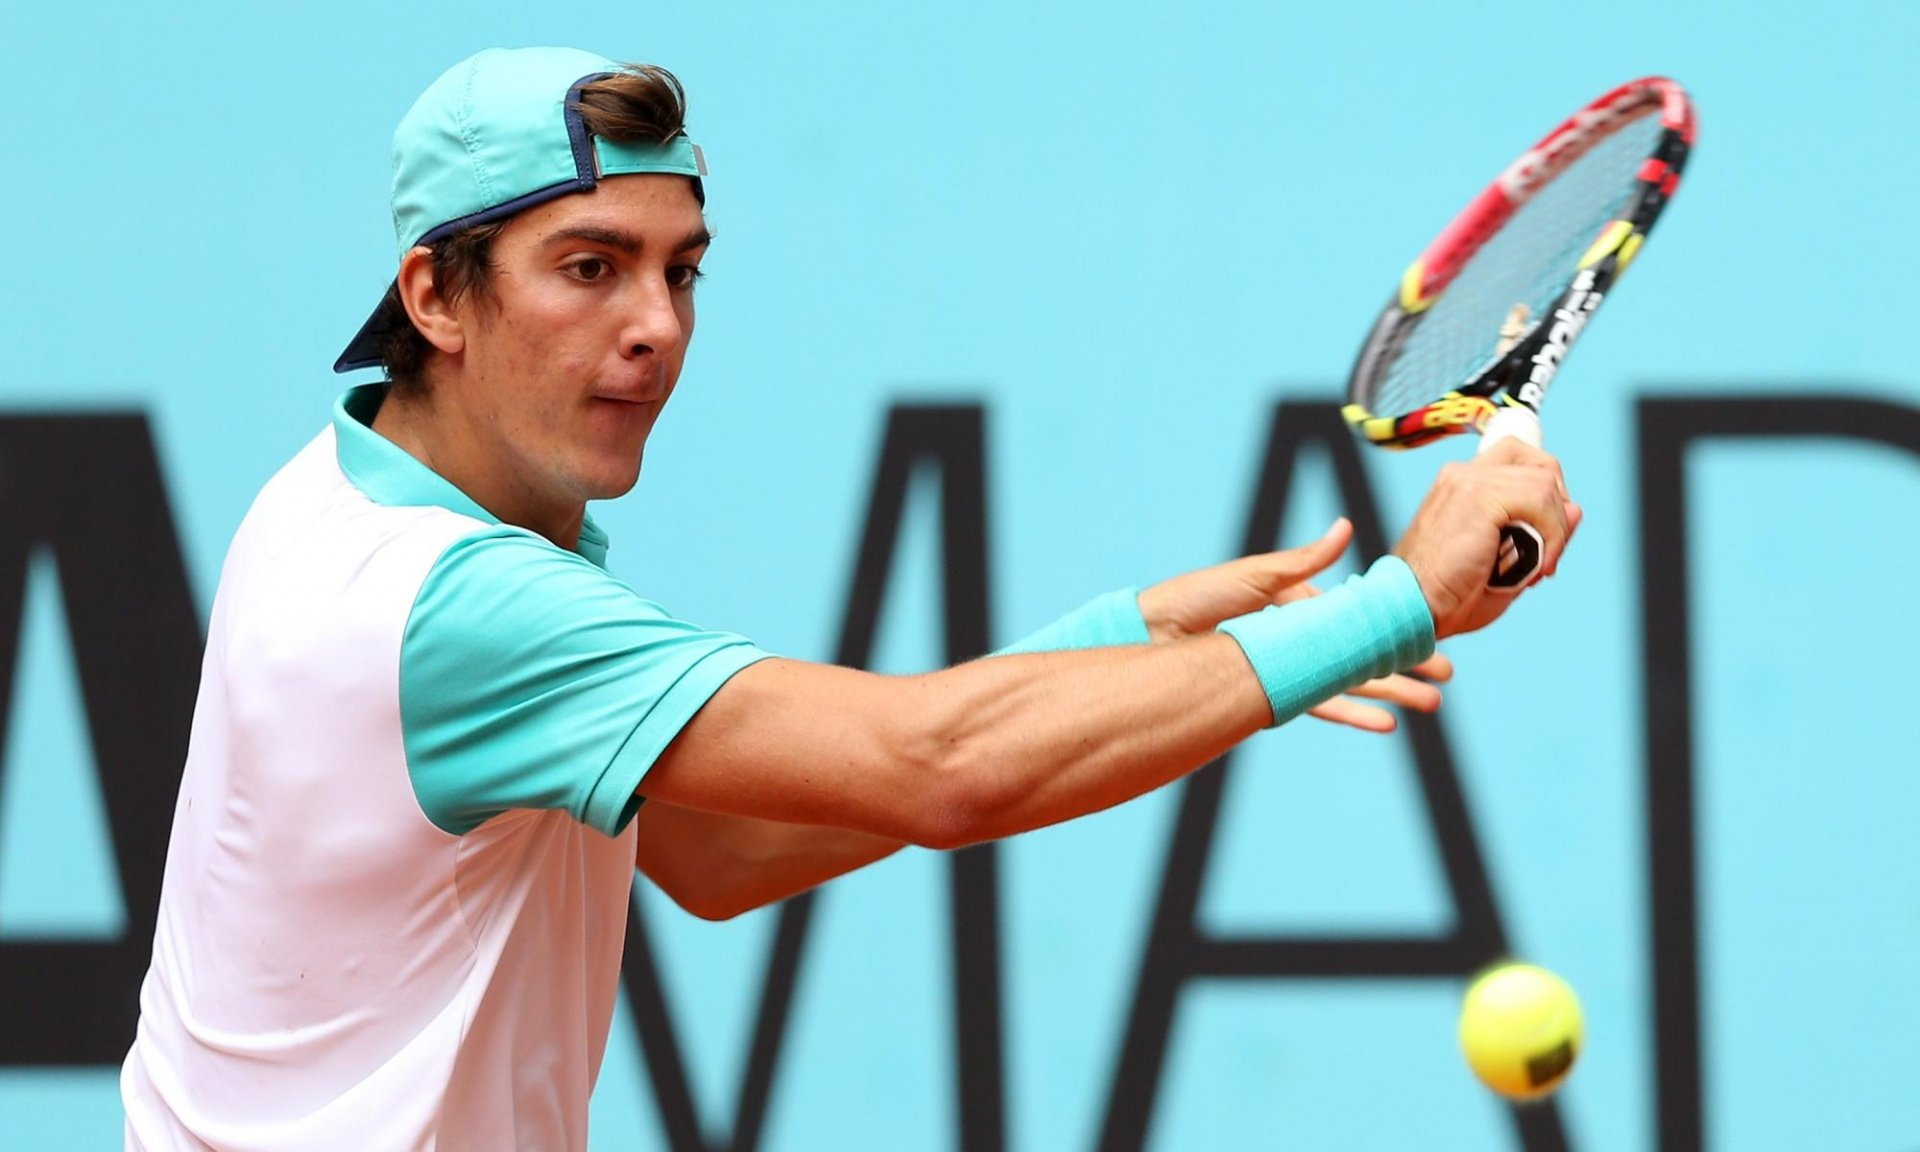 Rising tennis hope Kokkinakis handed French Open wildcard